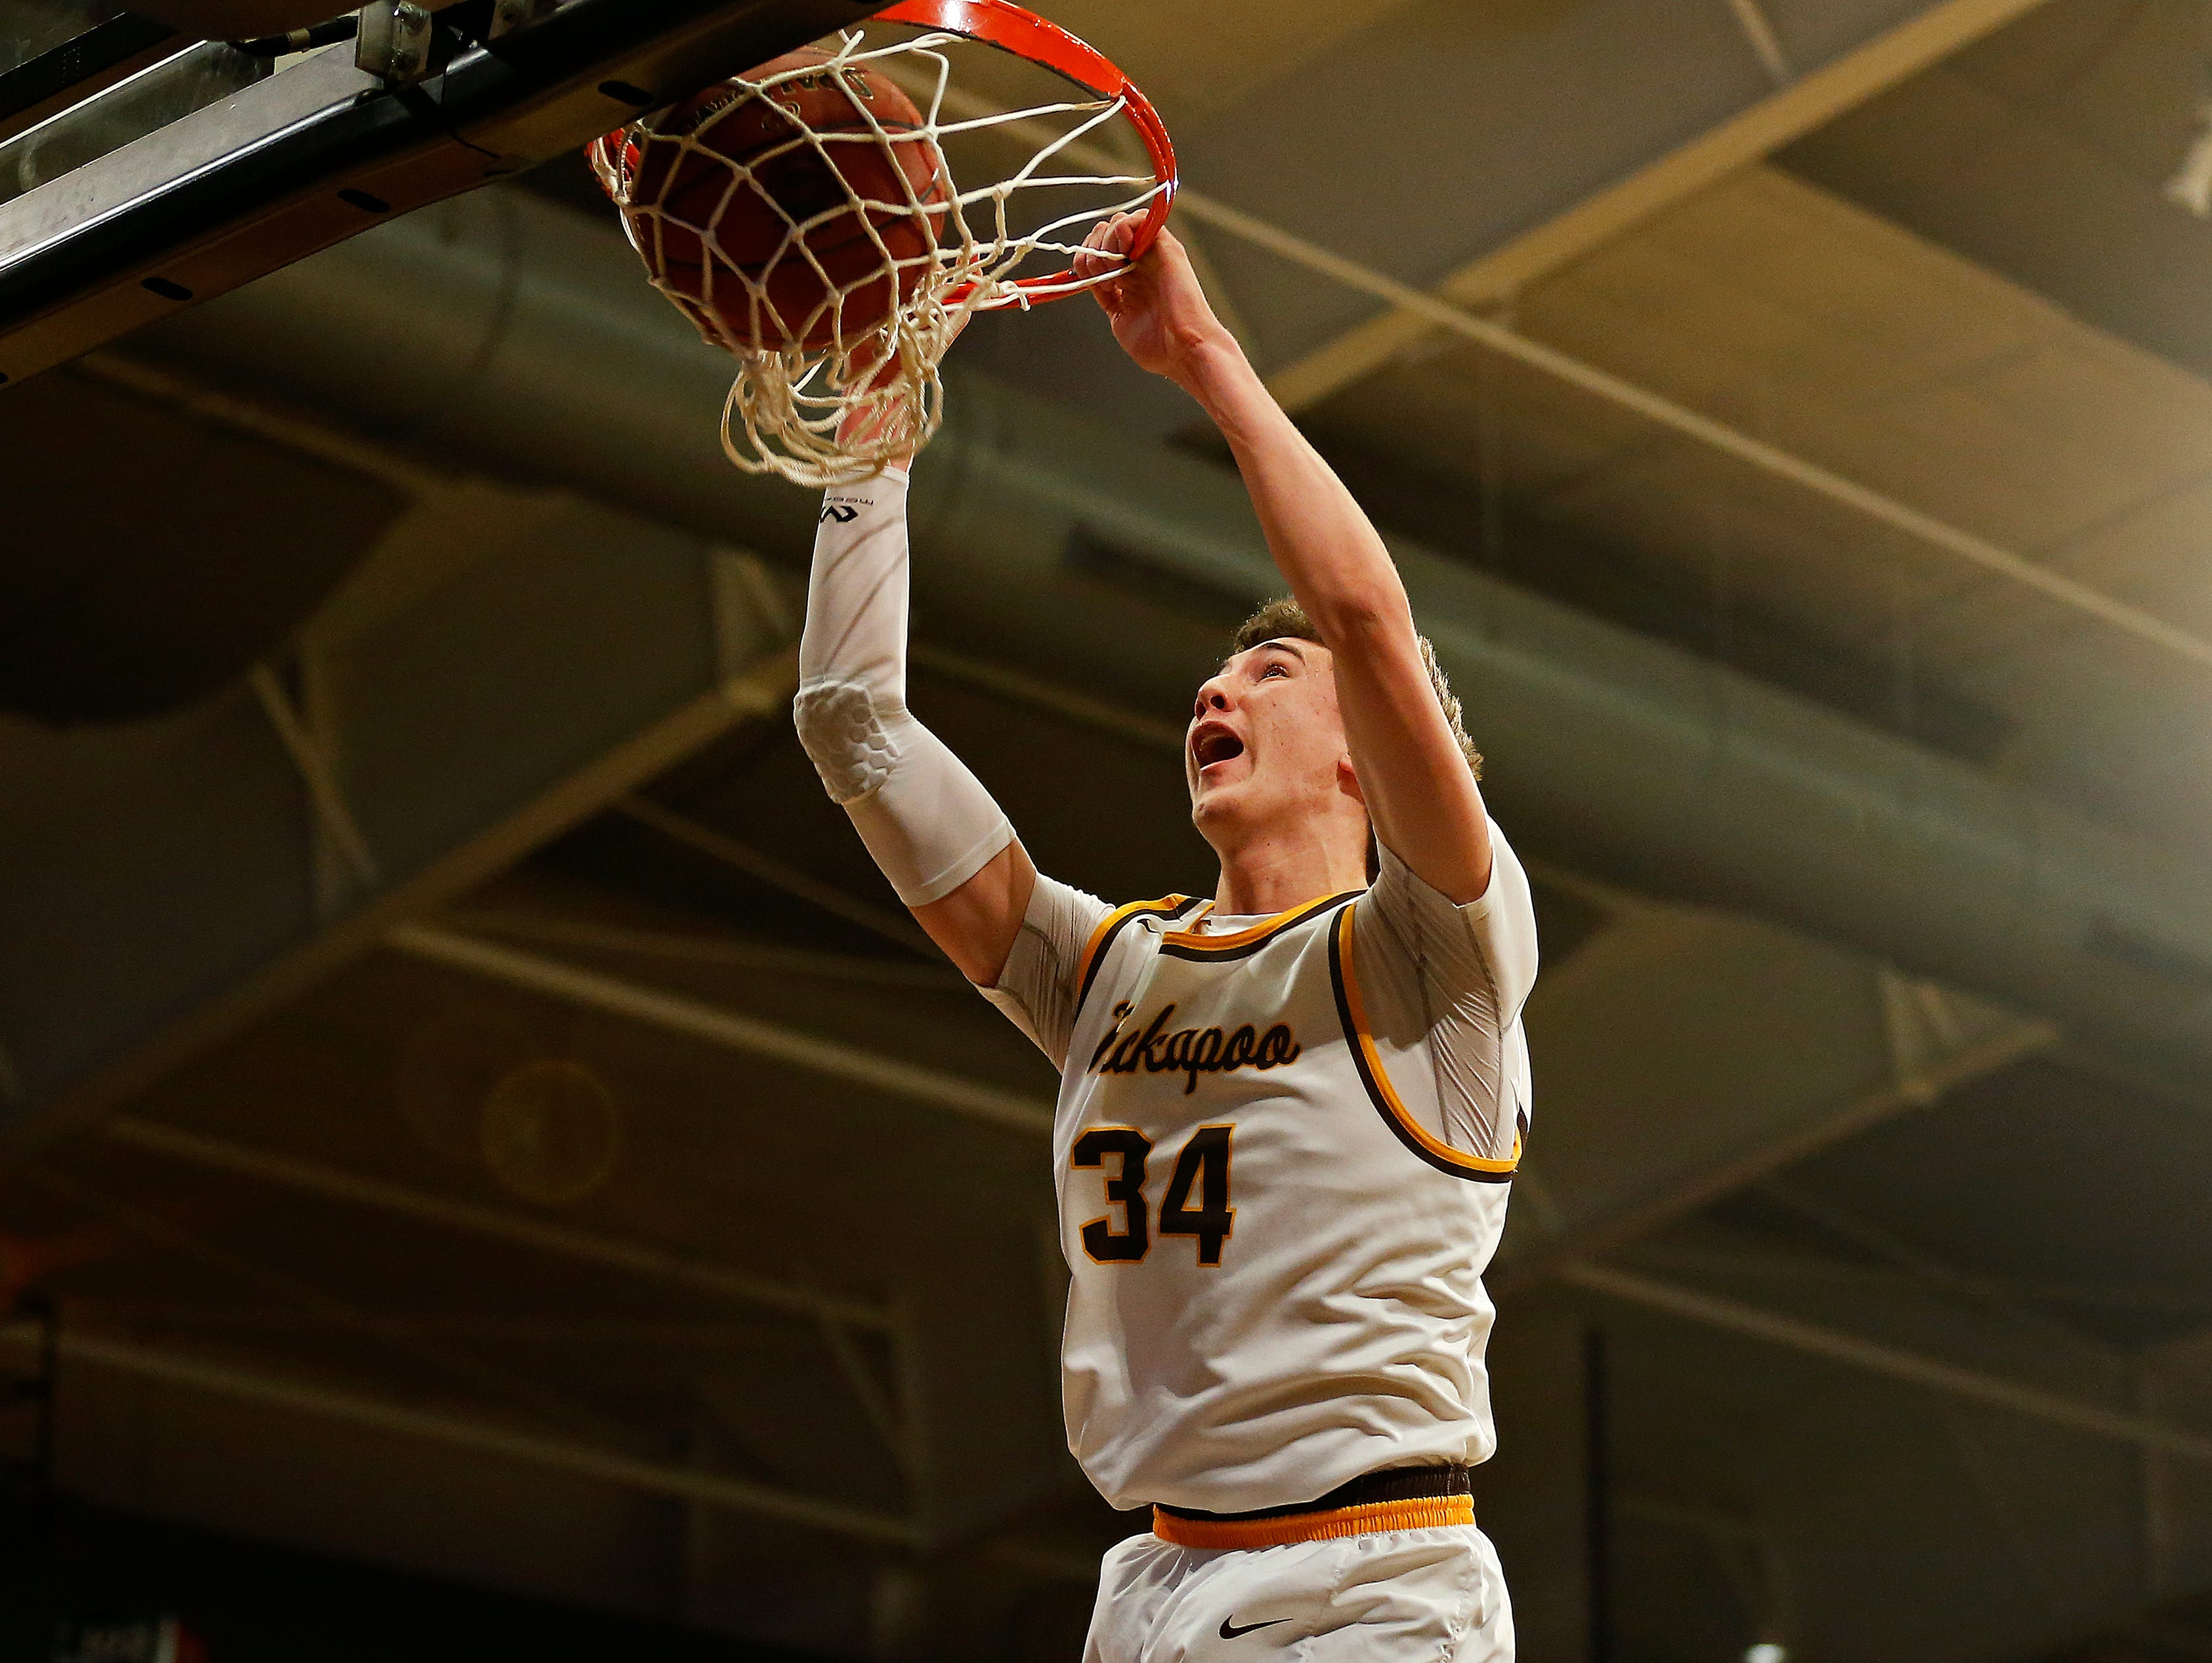 Kickapoo Chiefs forward Jared Ridder (34) dunks the ball during first quarter action of the MSHSAA Class 5 sectional playoff game between the Kickapoo High School Chiefs and the Nixa High School Eagles at the O'Reilly Family Event Center in Springfield, Mo. on March 8, 2017. The Kickapoo Chiefs won the game 79-46.